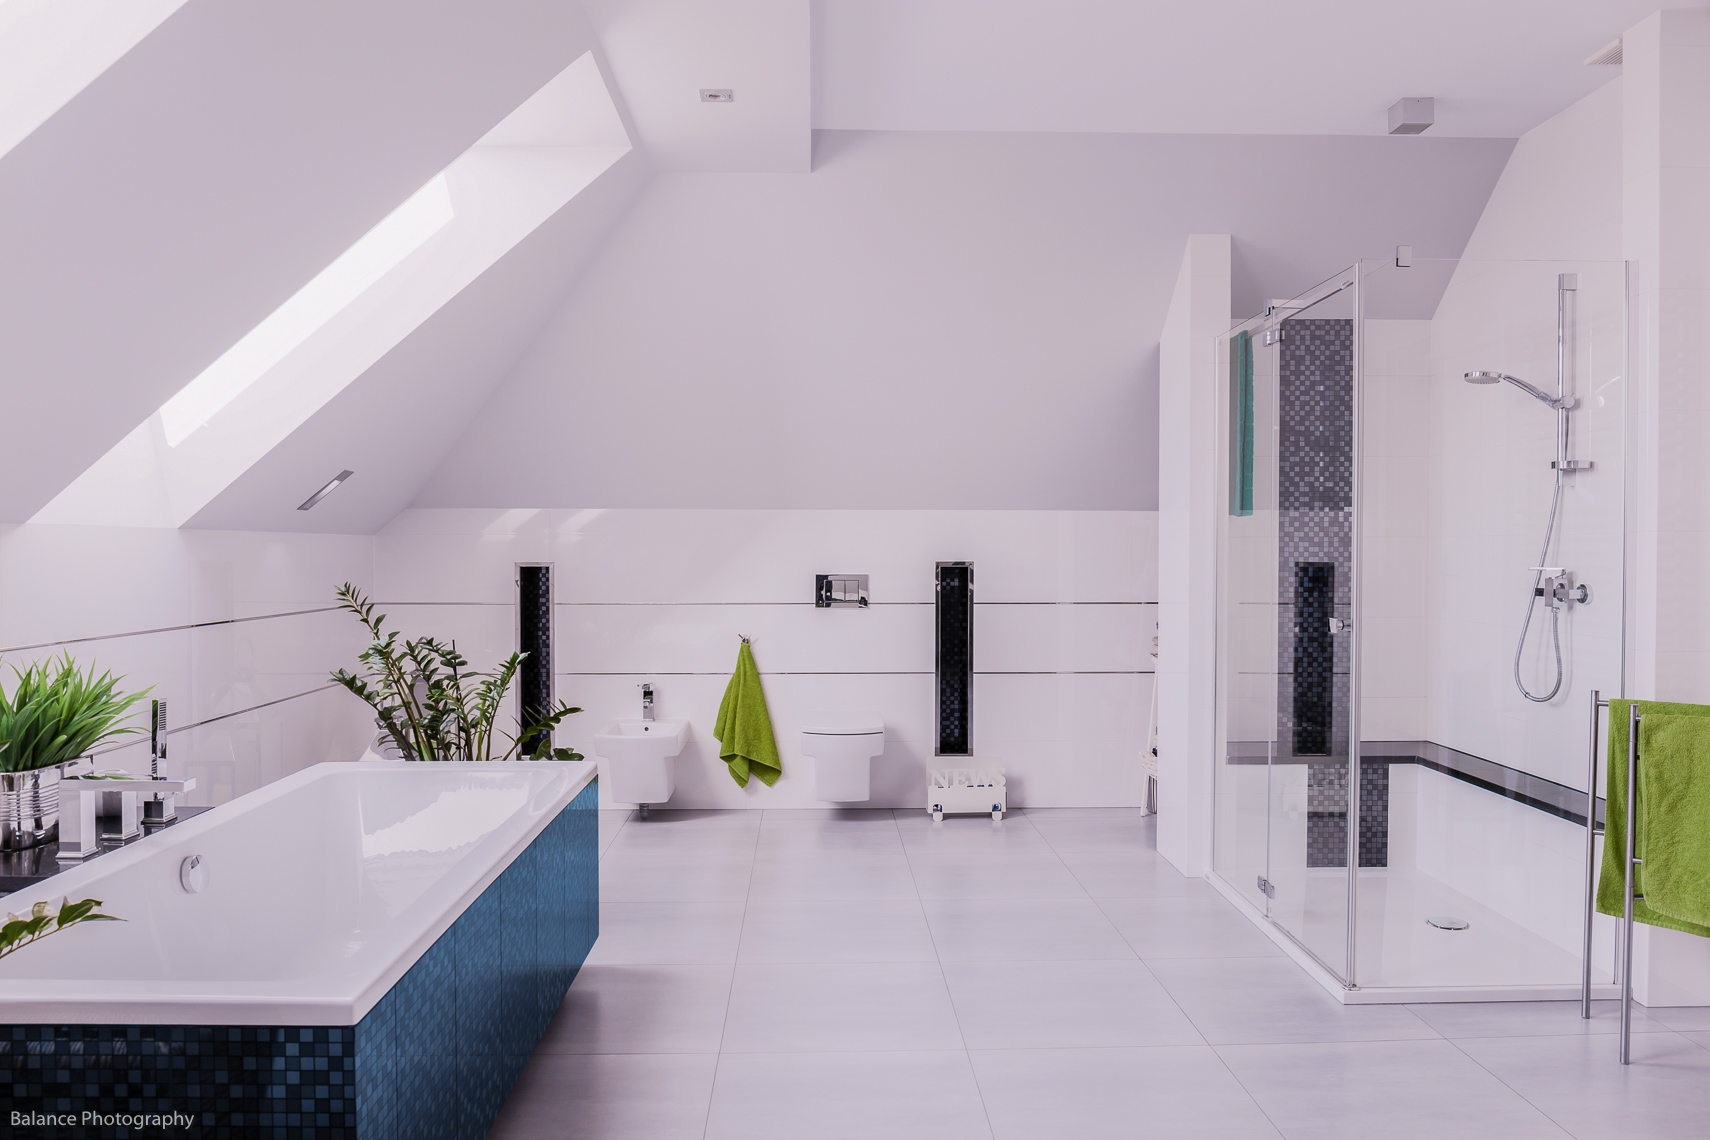 pf_exclusive-bright-bathroom-PLSUTQH_edit36